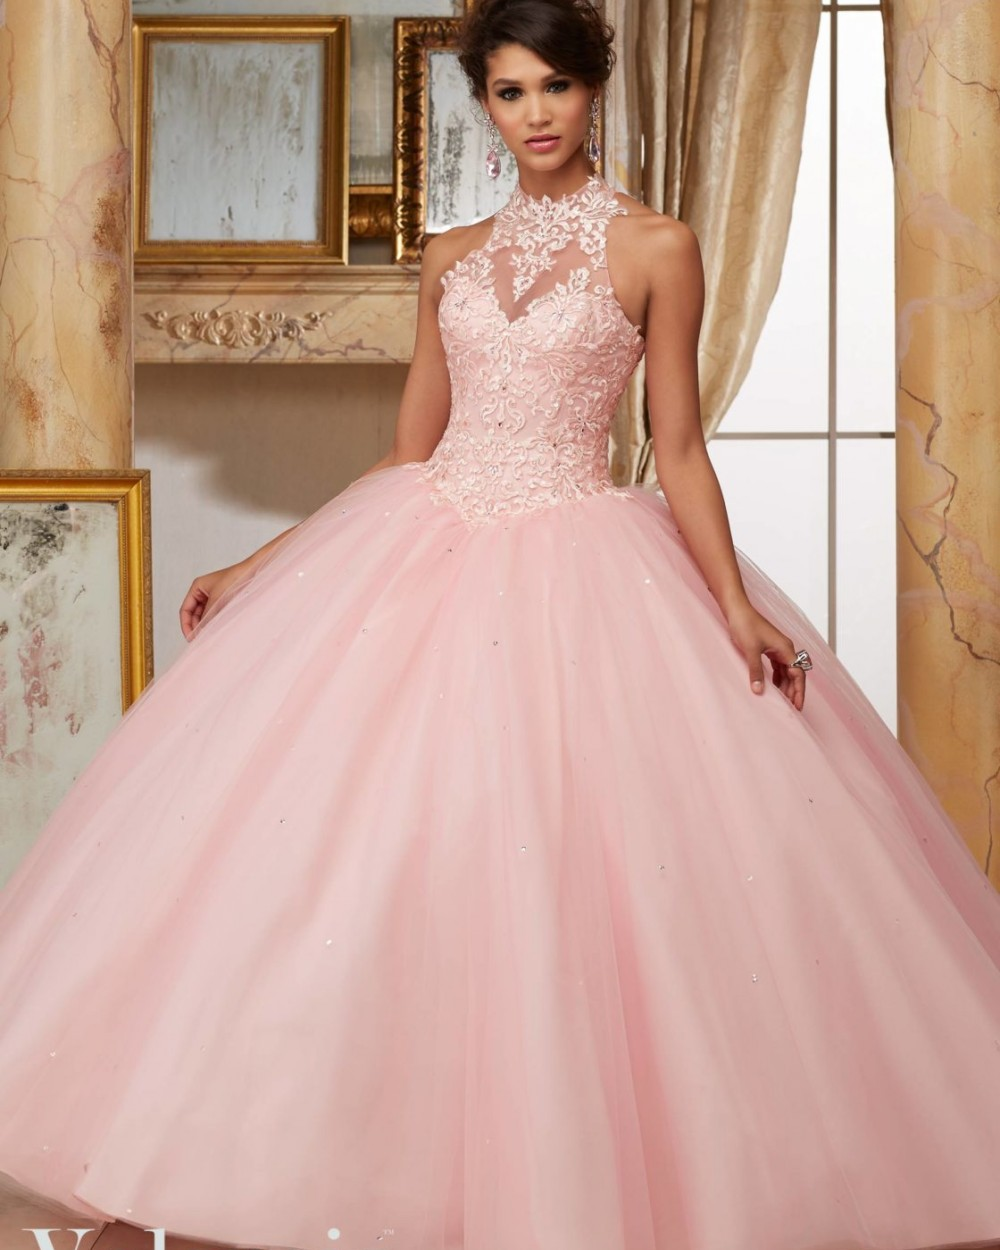 e6307b2af2b Light Pink Corset Quinceanera Dress Simple Appliques High Neck Debutante  Gown Off The Shoulder Sweet 16 Dresses vestido 15 anos